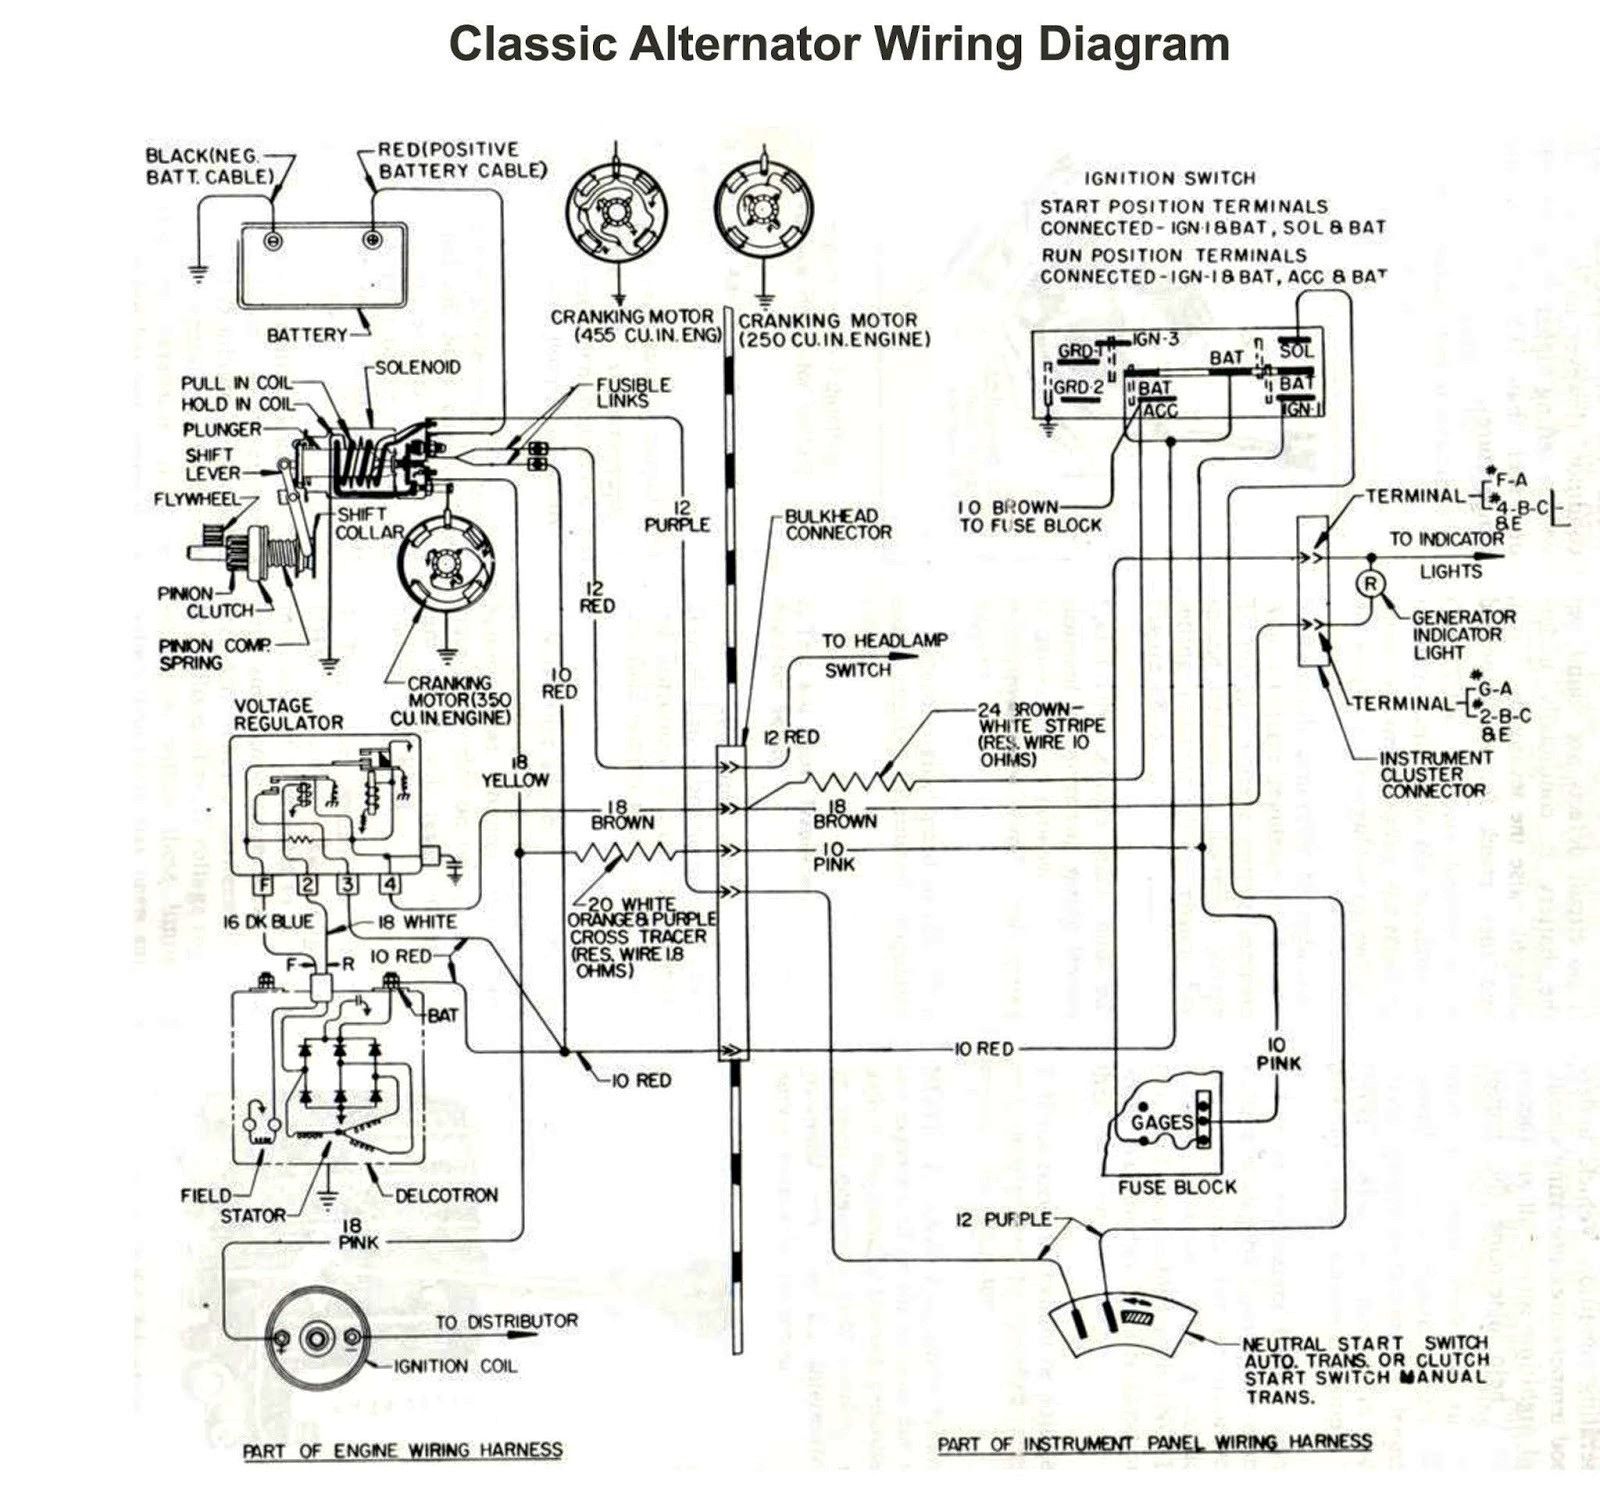 1978 Chevrolet Alternator Wiring Diagram Free Download Electrical Diagrams 1969 Chevy C10 Vehicle U2022 1964